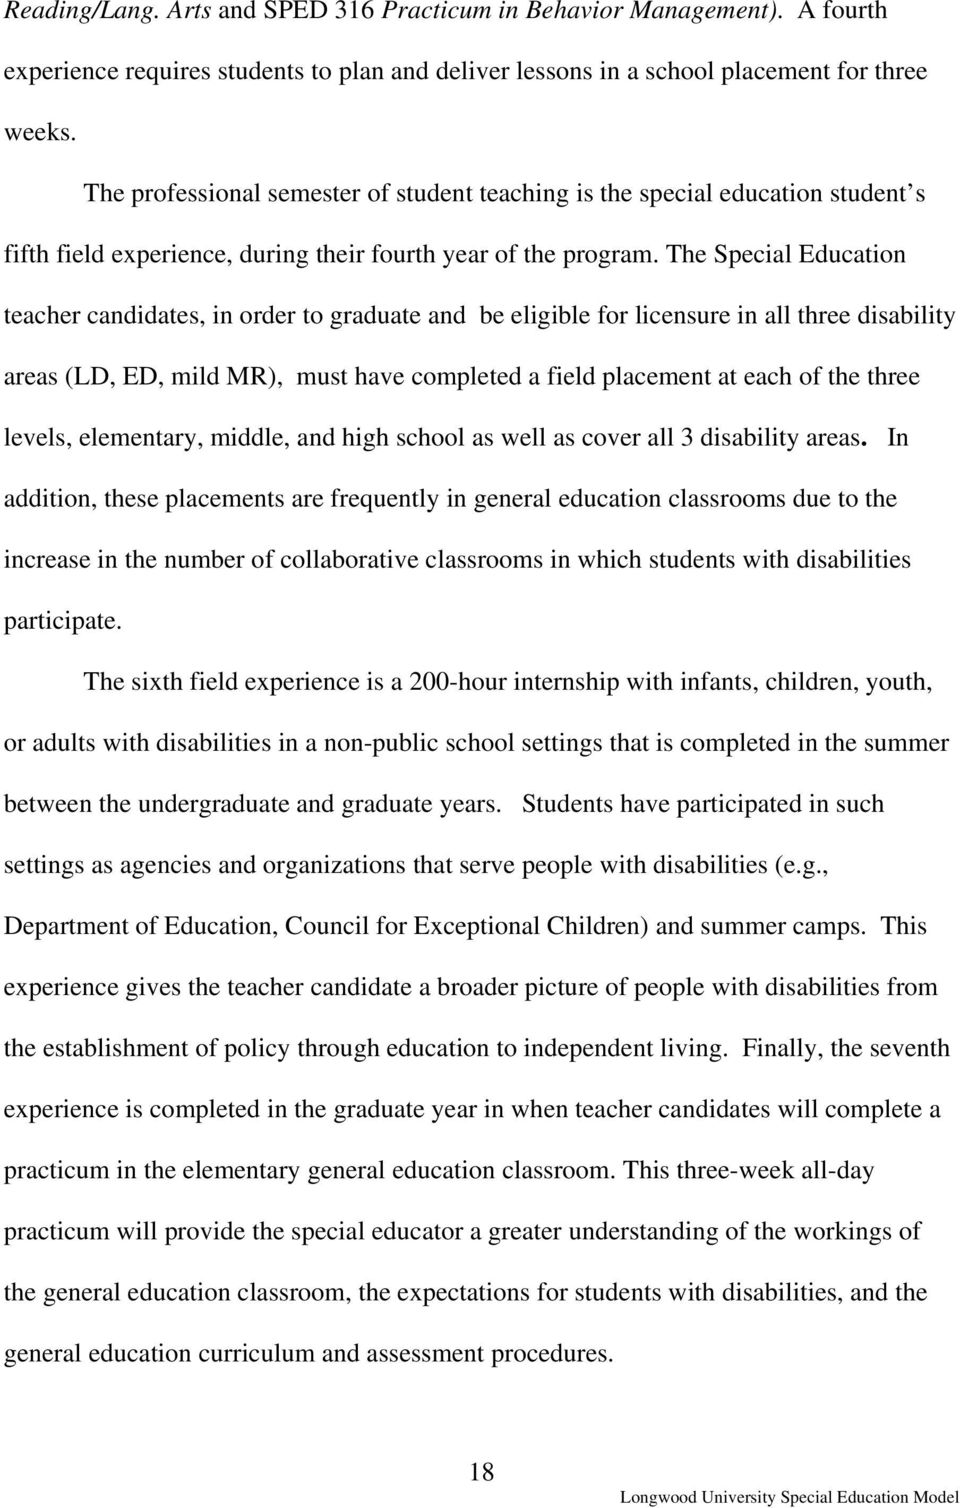 The Special Education teacher candidates, in order to graduate and be eligible for licensure in all three disability areas (LD, ED, mild MR), must have completed a field placement at each of the